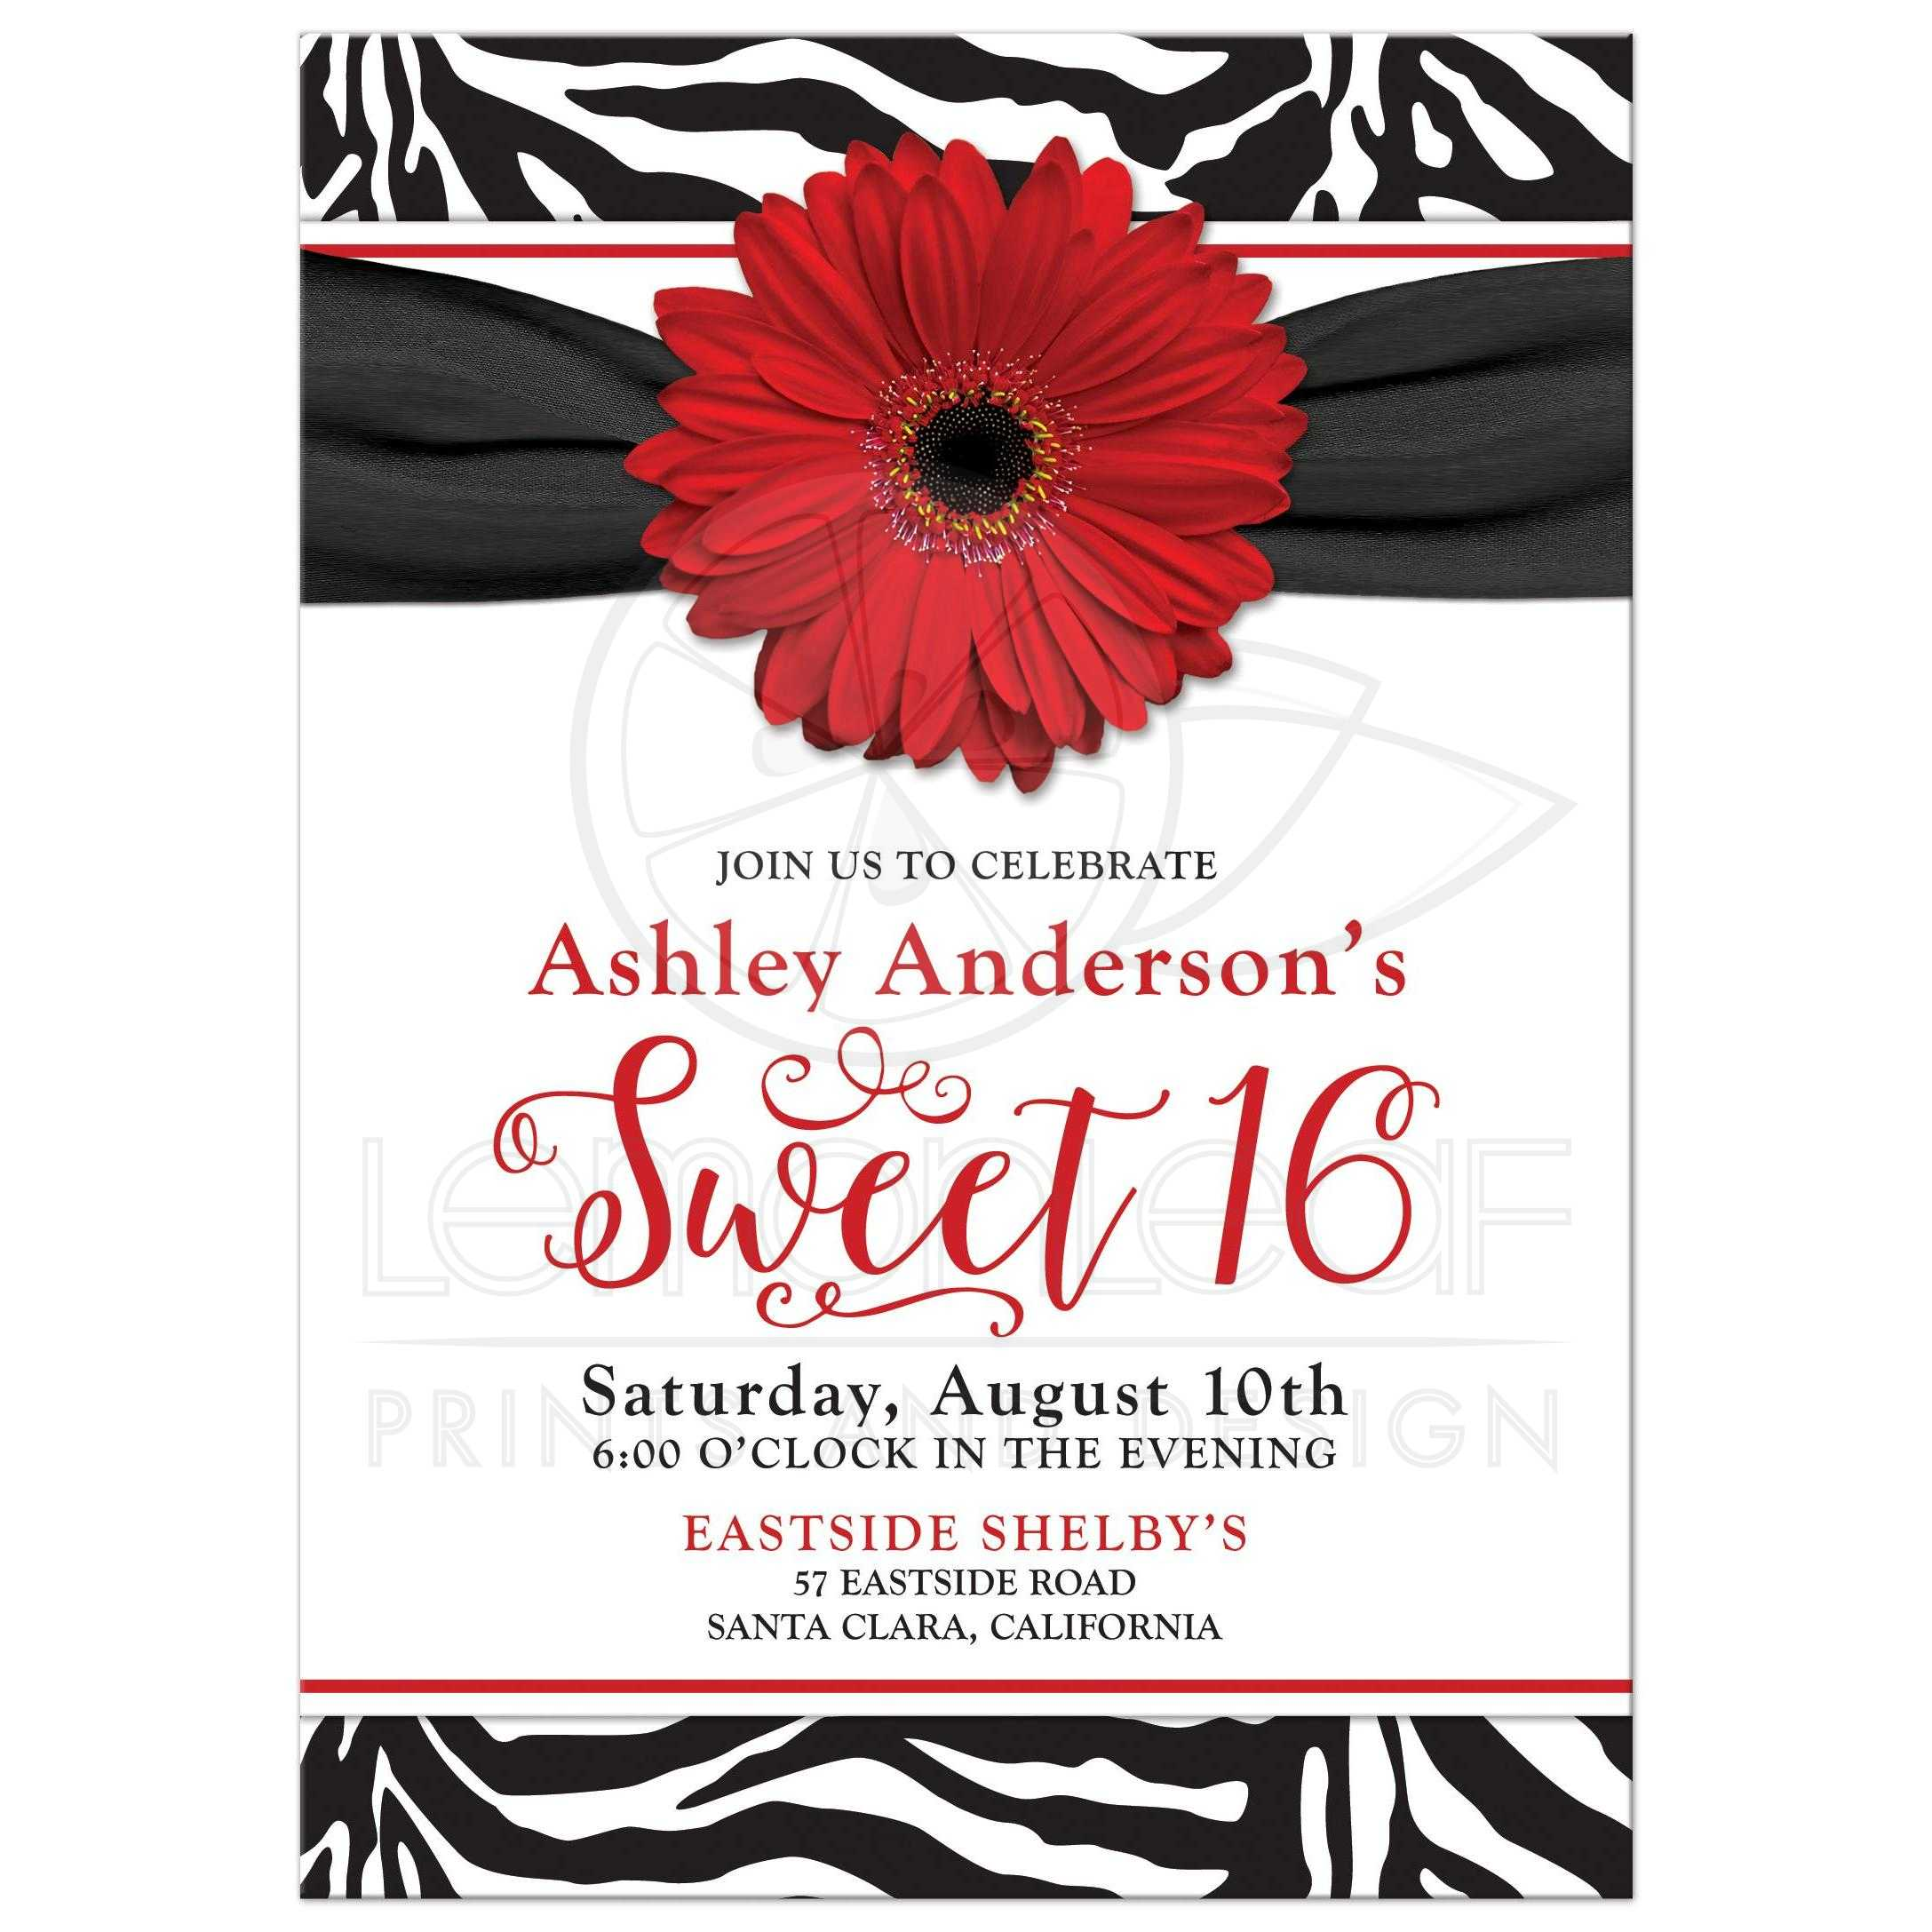 Sweet 16 Birthday Invitation | Chic Black White Zebra Print Red Daisy